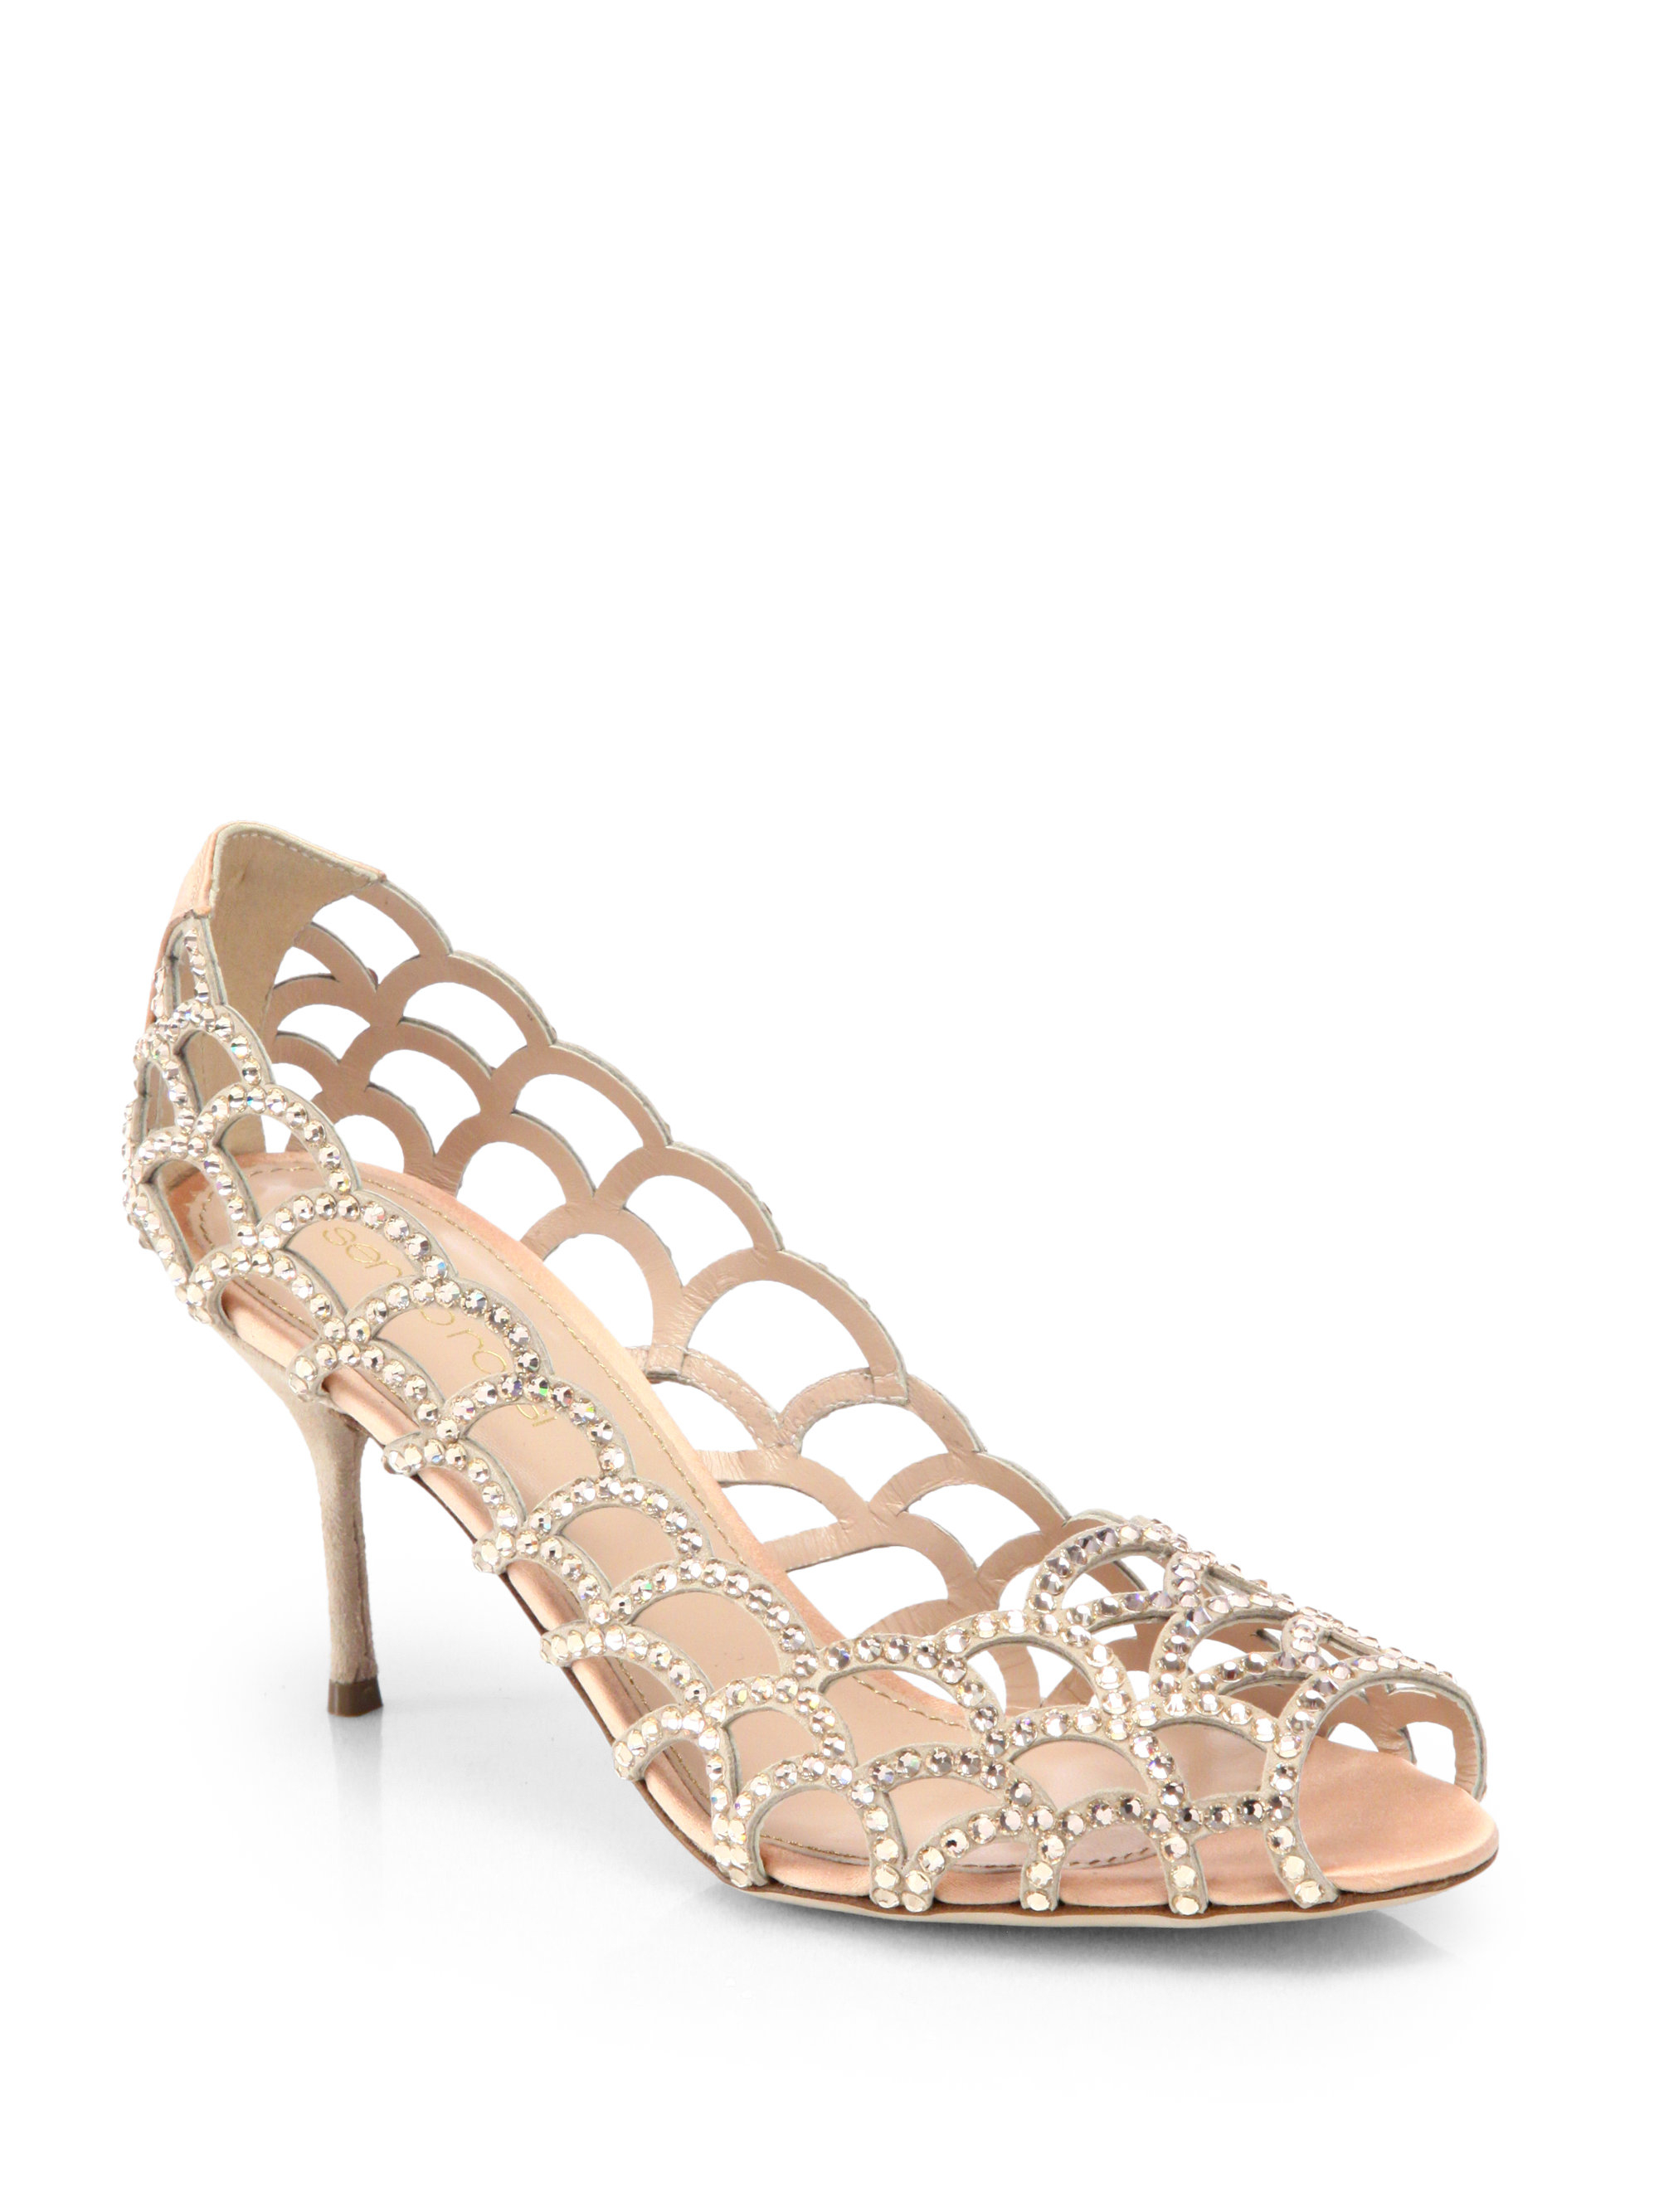 2477bf10547d Lyst - Sergio Rossi Crystalcoated Mermaid Pumps in Natural